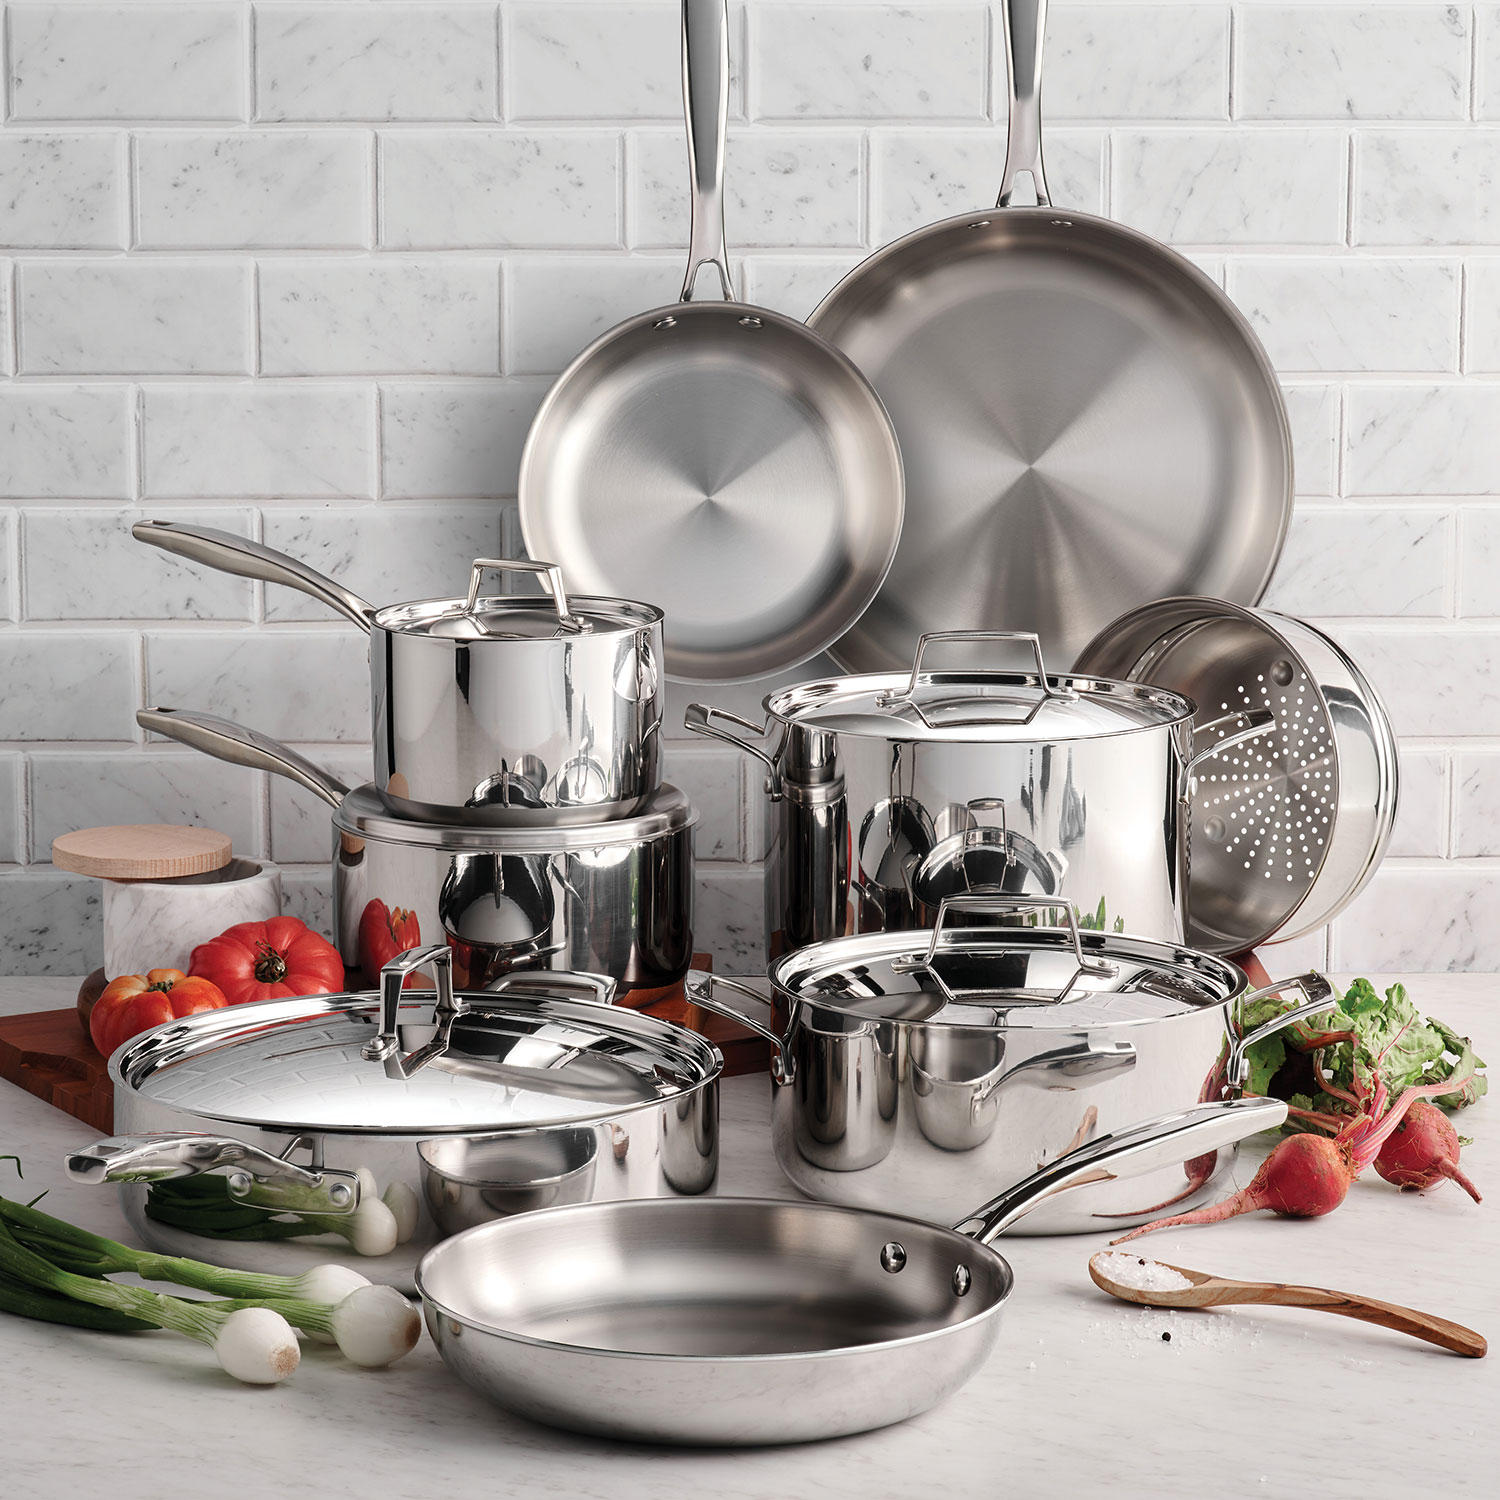 14-Piece Tramontina Cookware Set